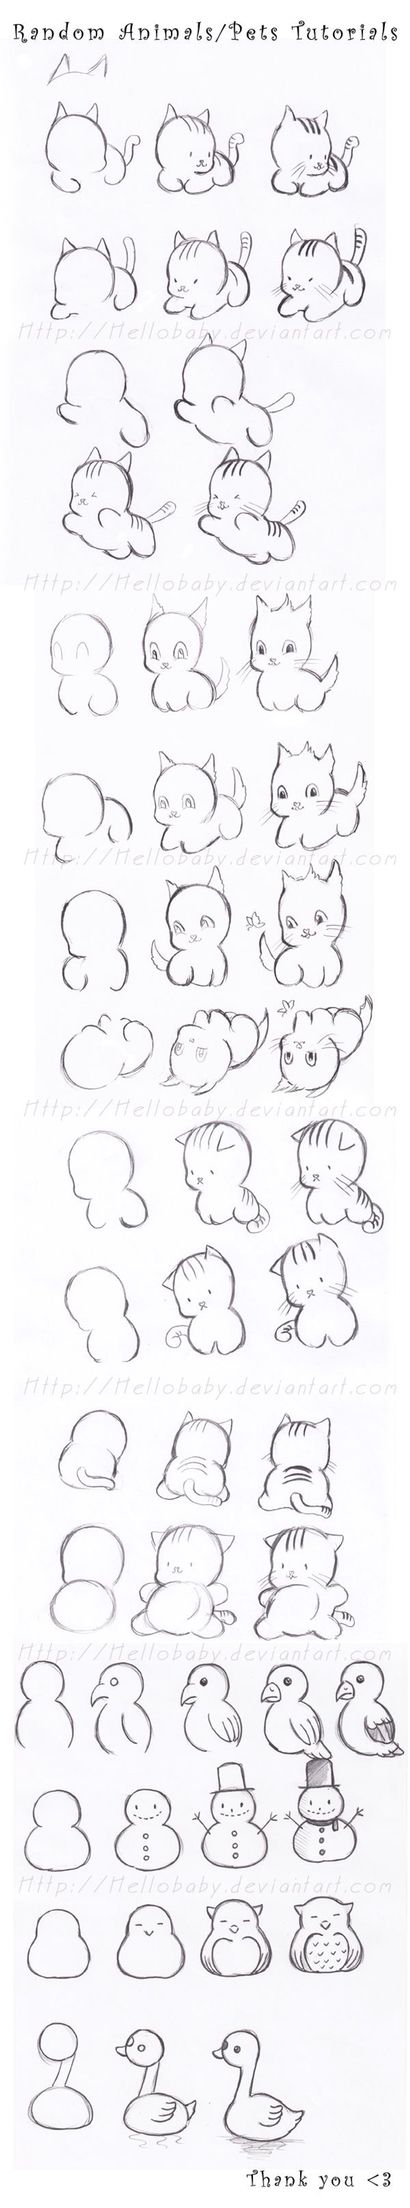 Chibi Adorably Cute Animal Drawing Tutorial How To -  Learn more about Wacom graphics tablets, go to Wacomtabletreviews.net